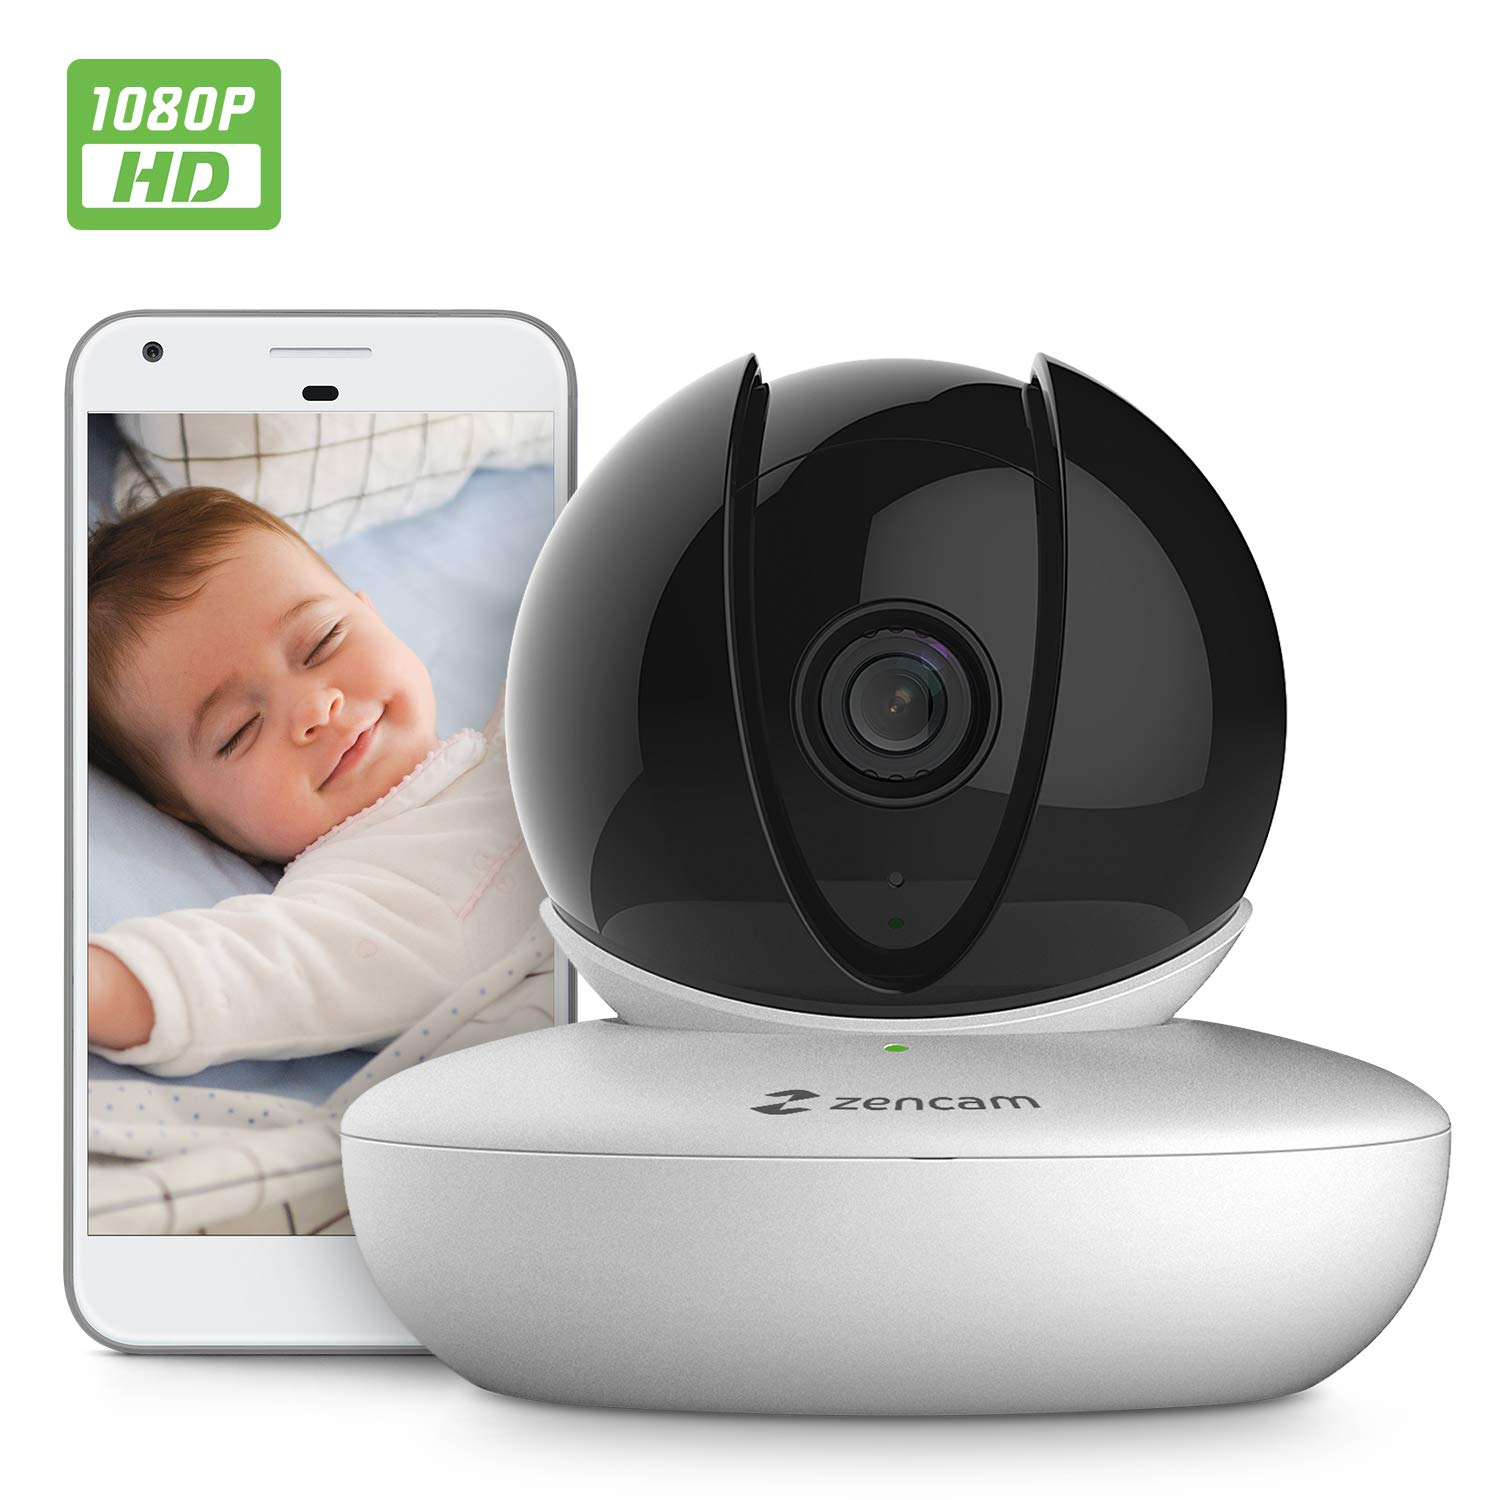 Amcrest Zencam 1080P WiFi Camera, Pet Dog Camera, Nanny Cam with Two-Way Audio, Baby Monitor with Cell Phone App, Pan/Tilt Wireless Wi-Fi IP Camera, Micro SD Card, RTSP, Cloud, Night Vision, M2W White